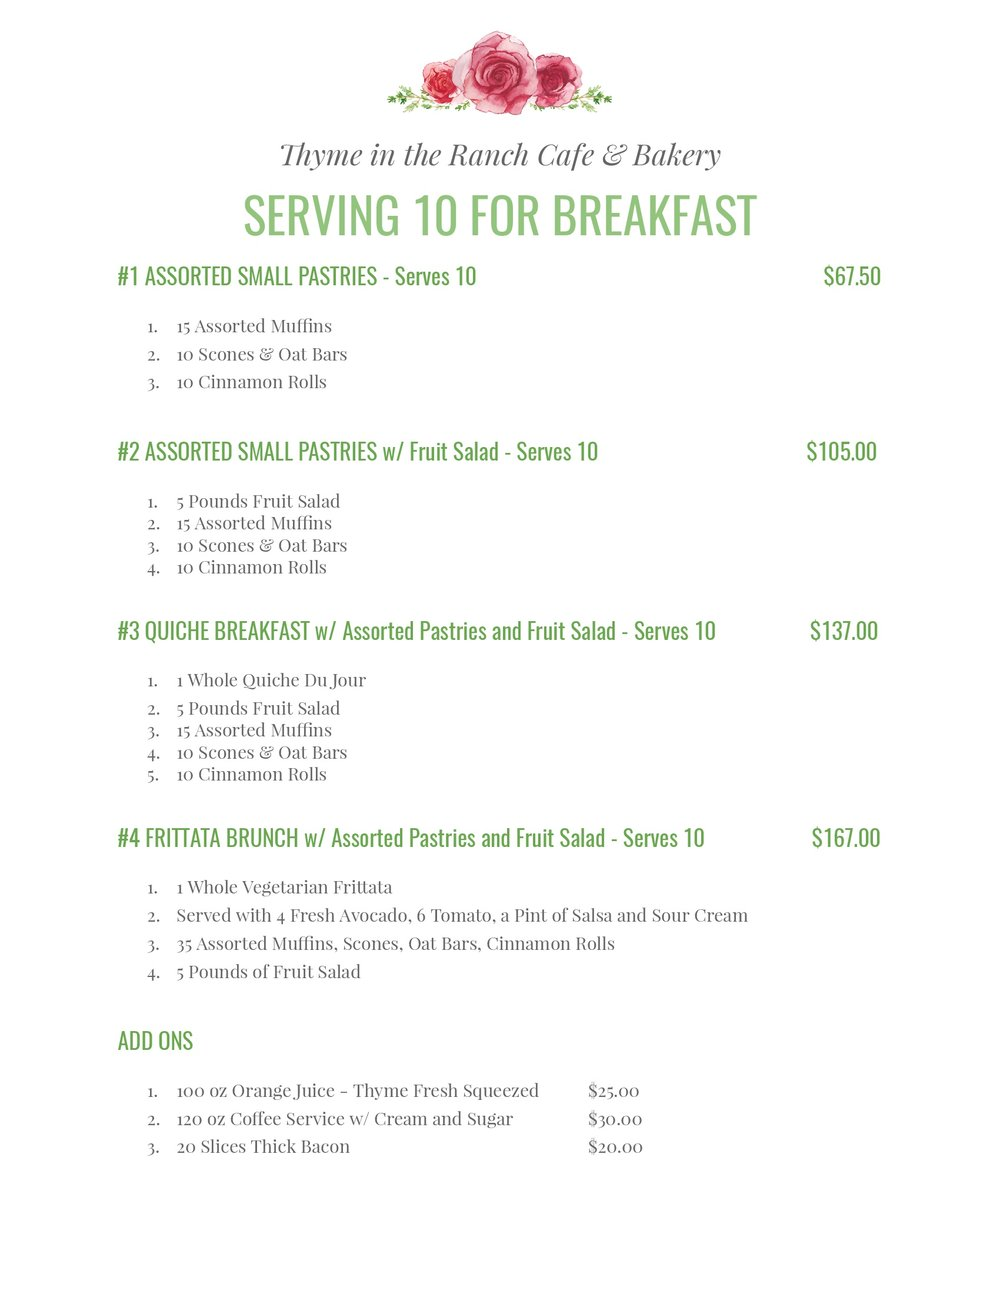 Breakfast Catering Menu for 10 people